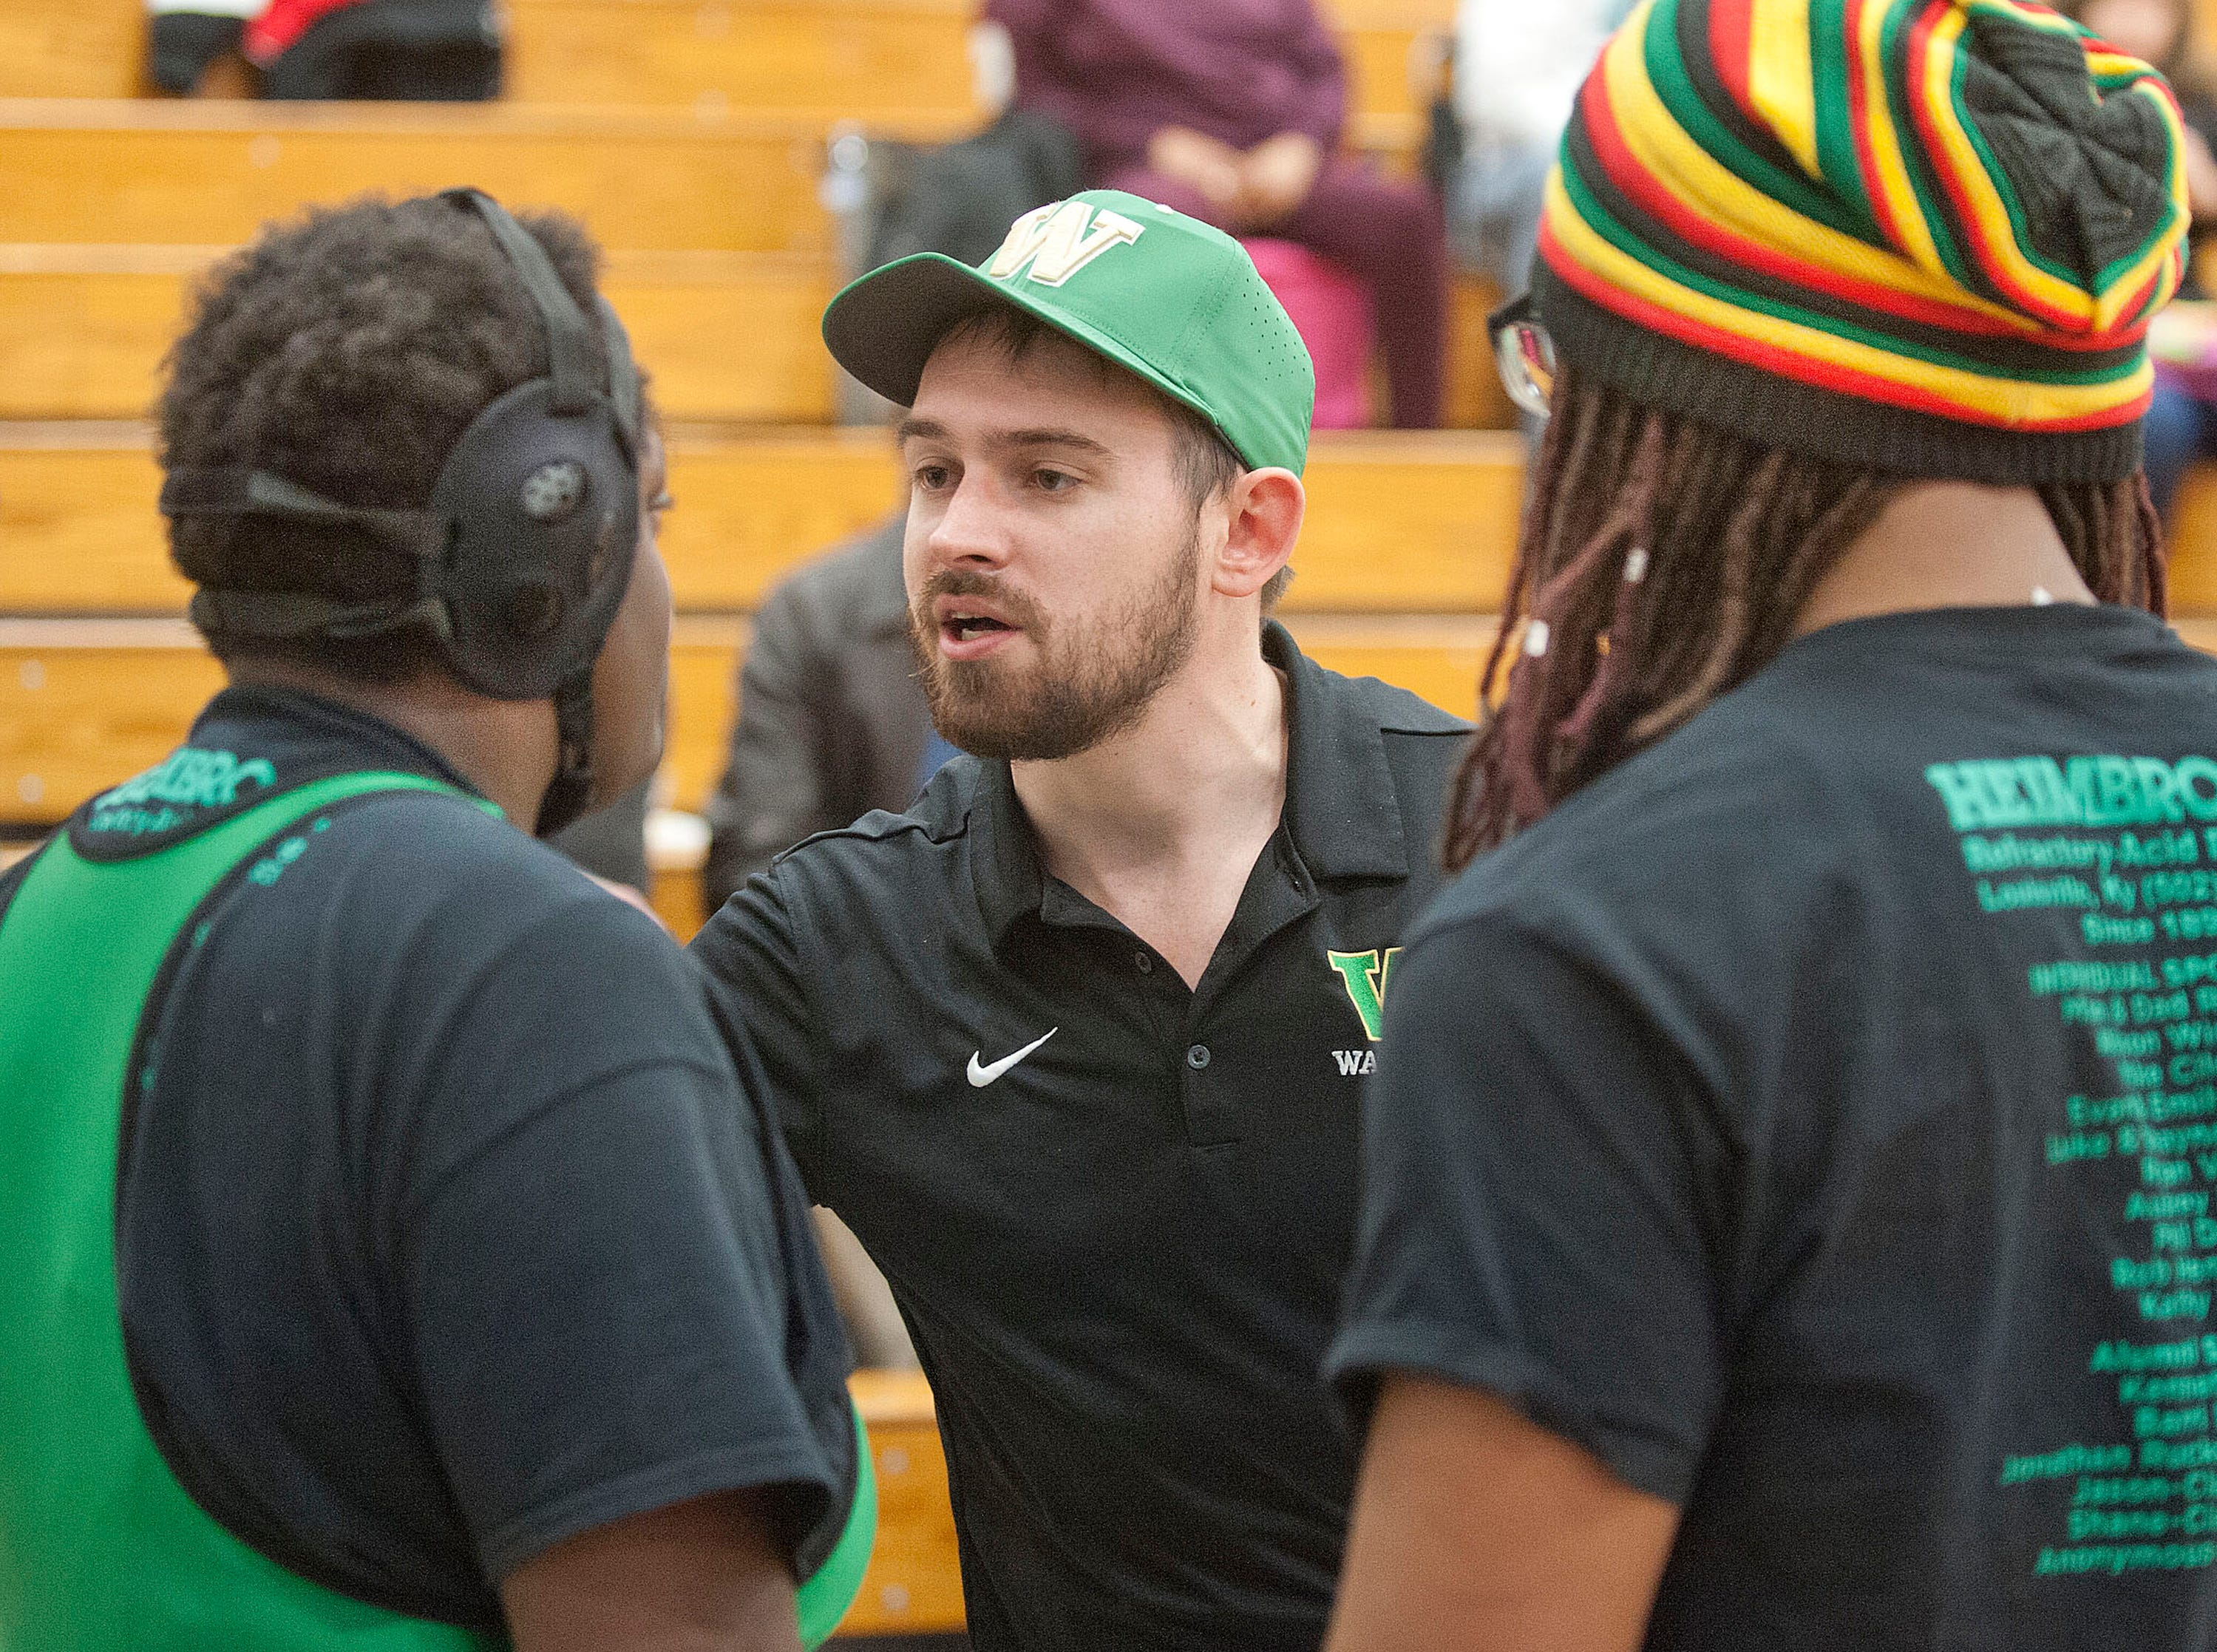 Western wrestling head coach Samuel Roberts gives his wrestler some last minute advice prior to the start of her match. At right is assistant coach Desean Stratton.09 February 2019